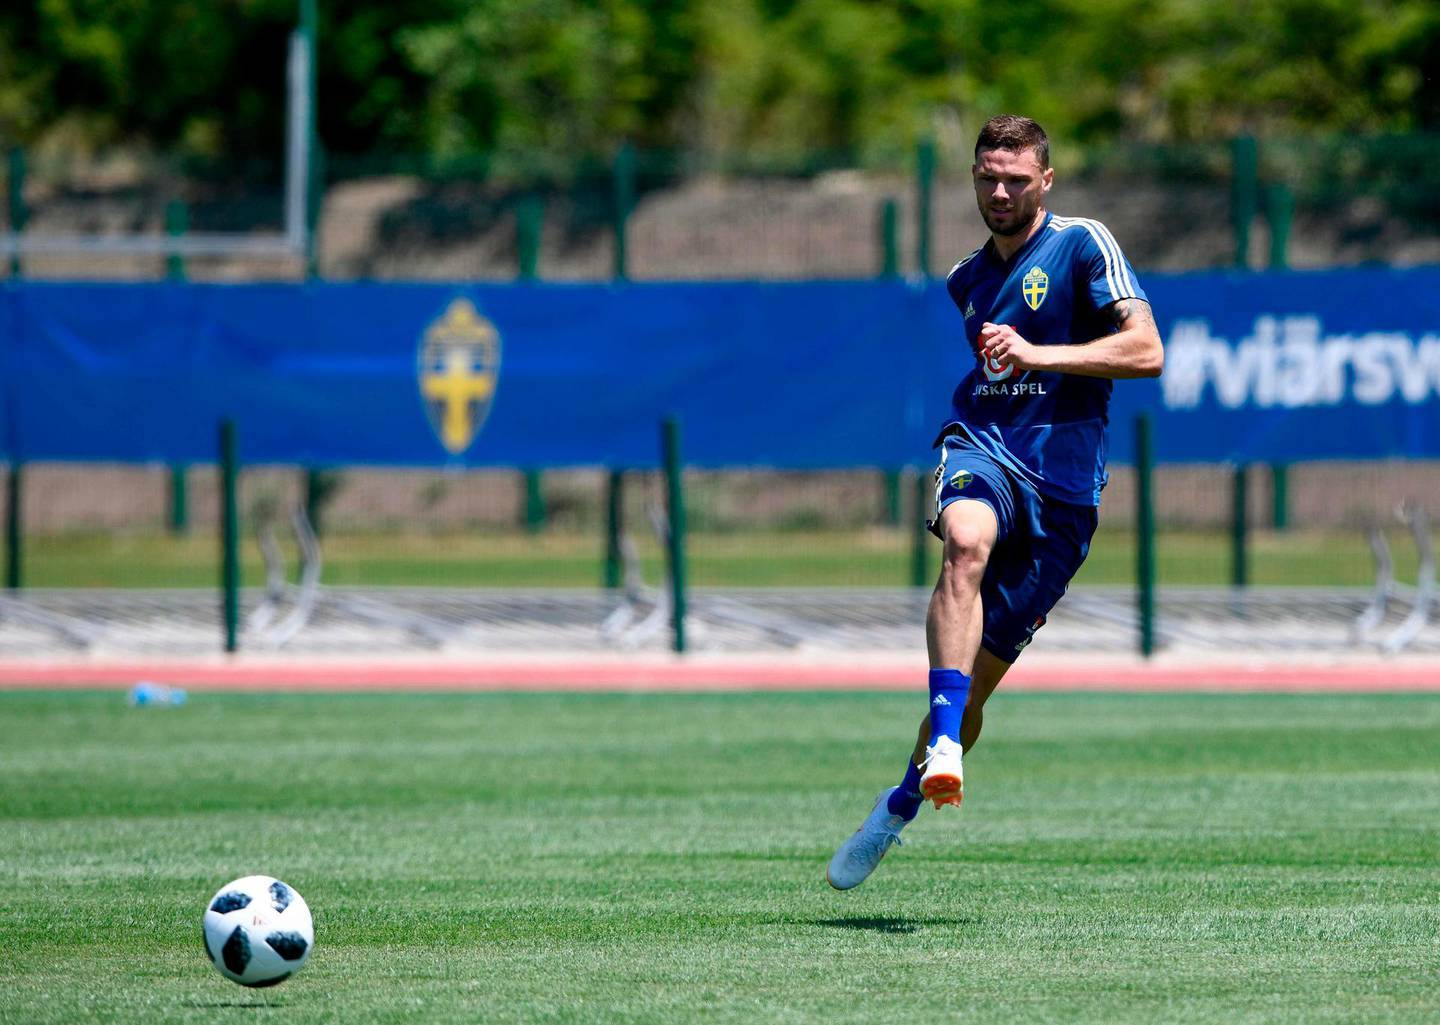 Sweden's forward Marcus Berg attends a training session on June 14, 2018 at Spartak stadium in Gelendzhik, ahead of the Russia 2018 World Cup football tournament.  / AFP / Jonathan NACKSTRAND